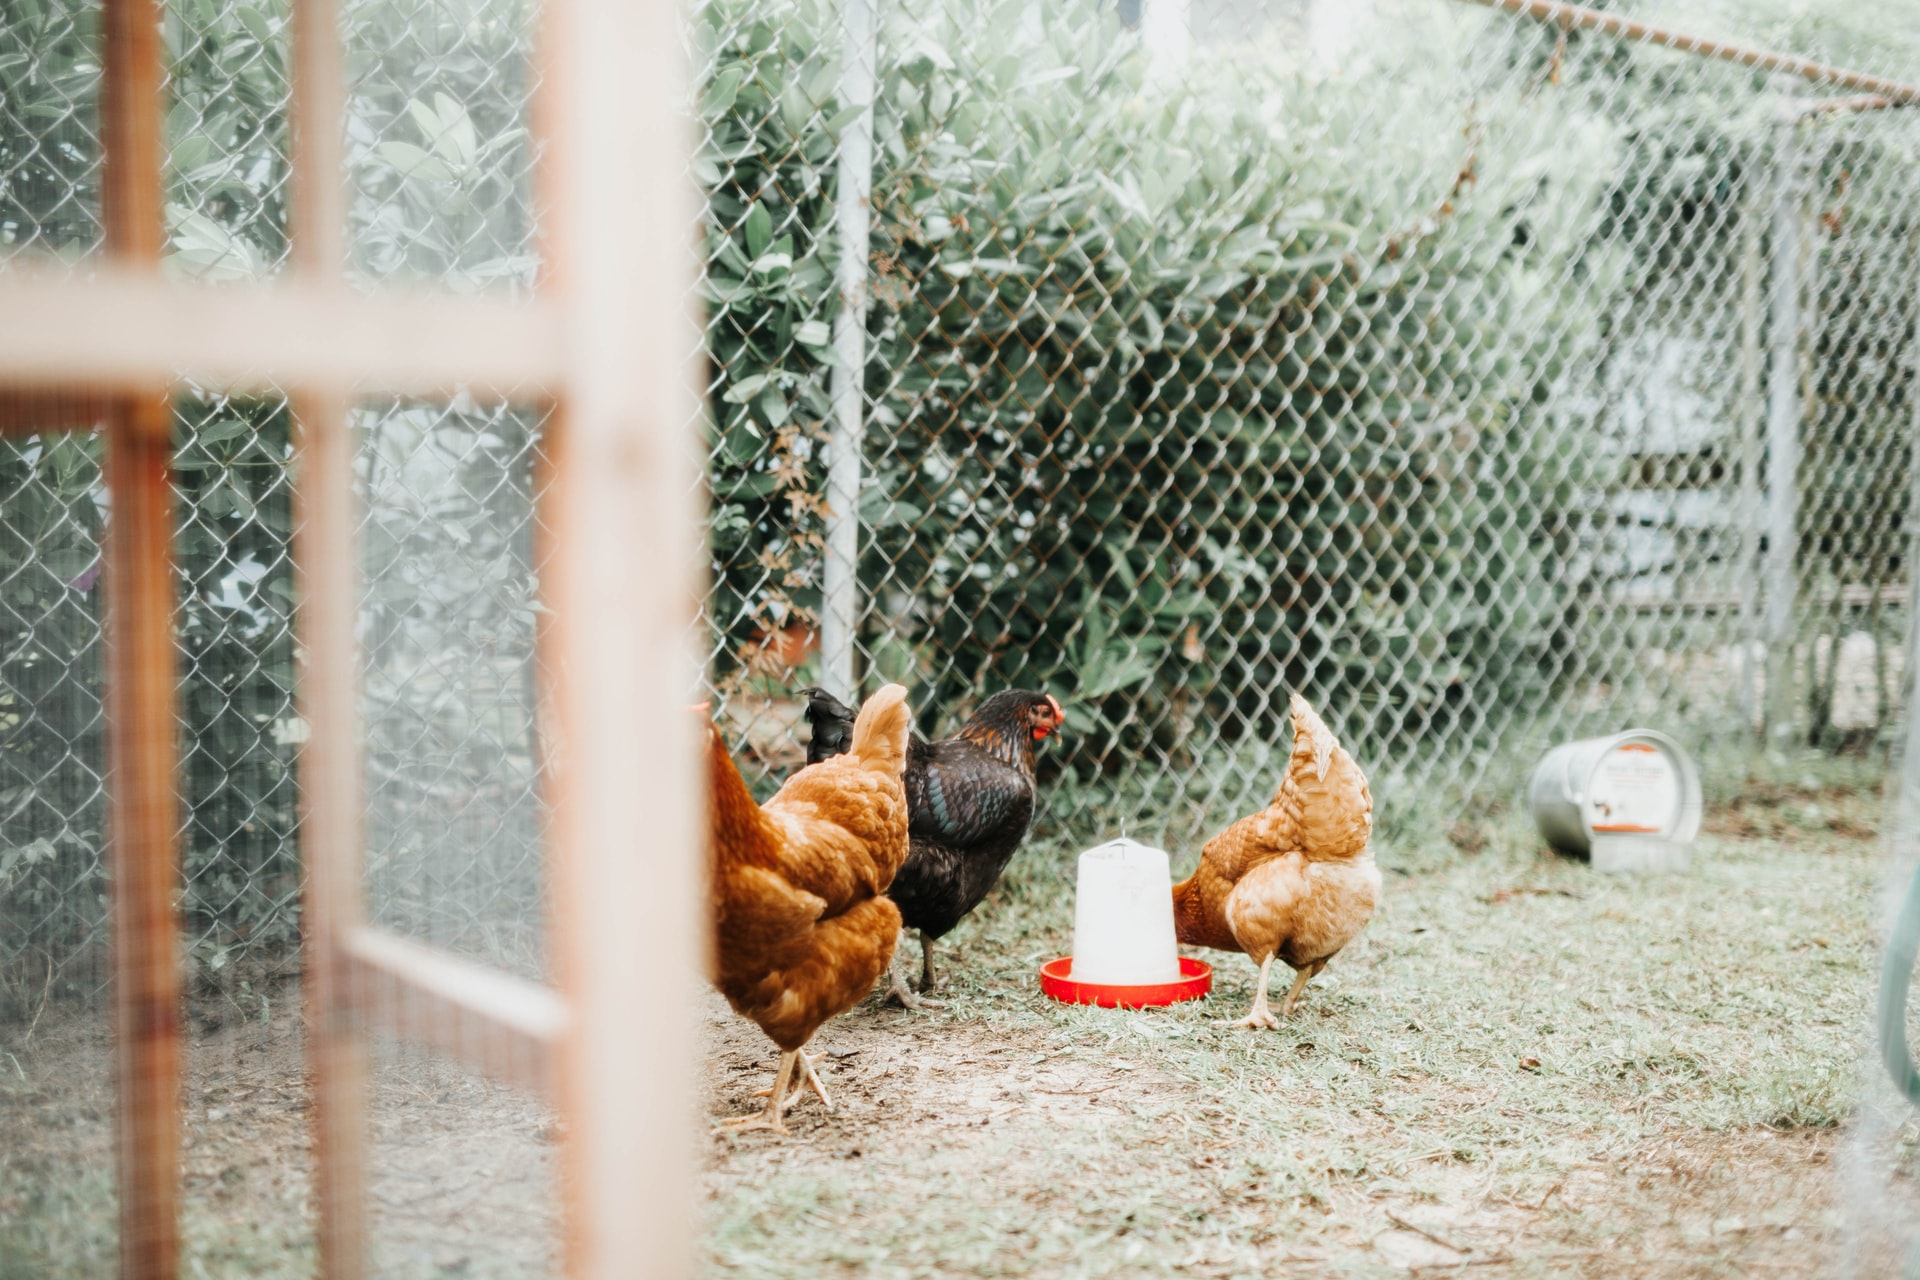 How High Should a Chicken Fence be? For Coop, Run, and Garden.